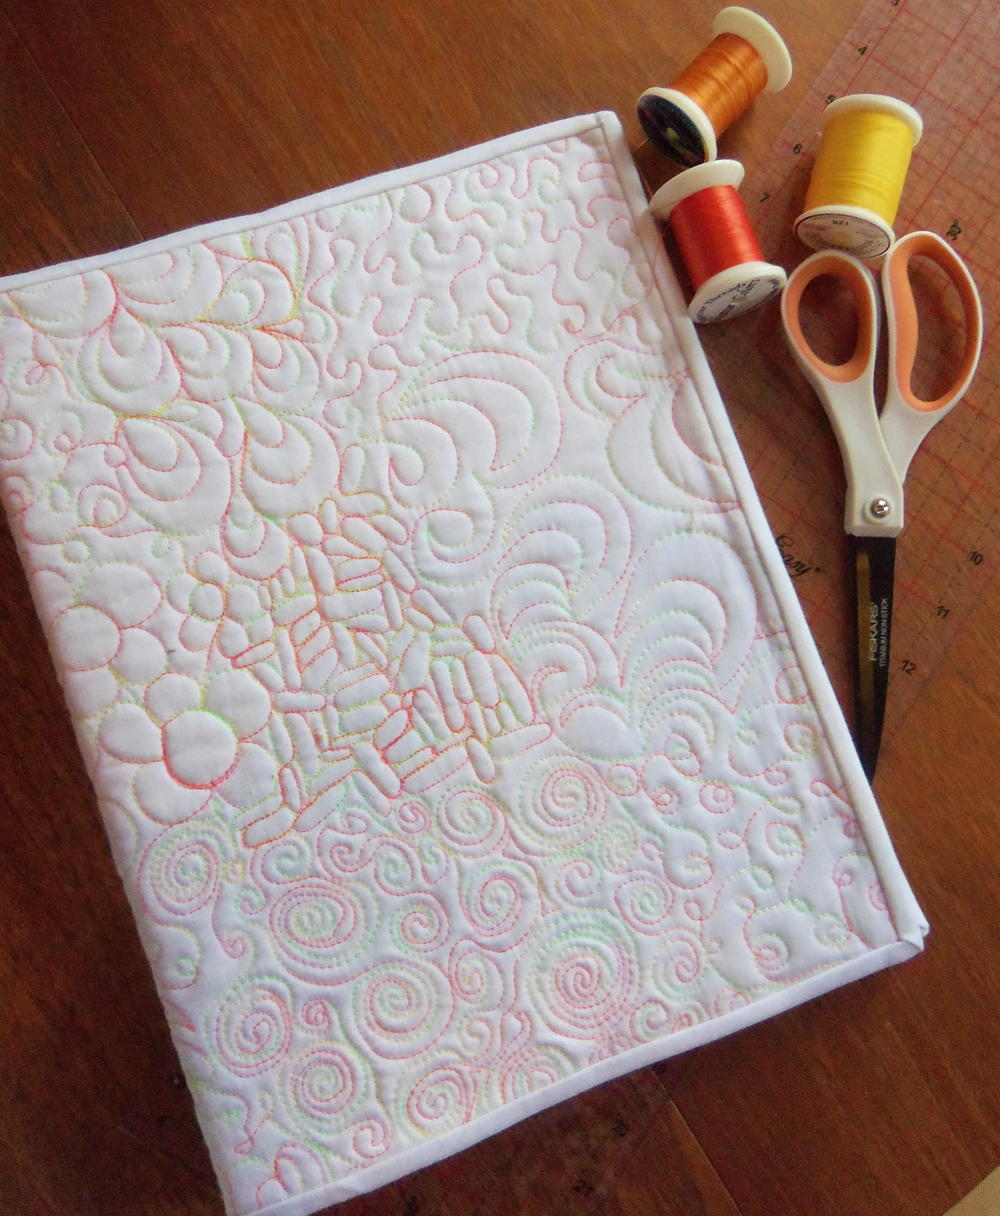 Swirly Binder Cover Sewing Pattern Allfreesewing Com